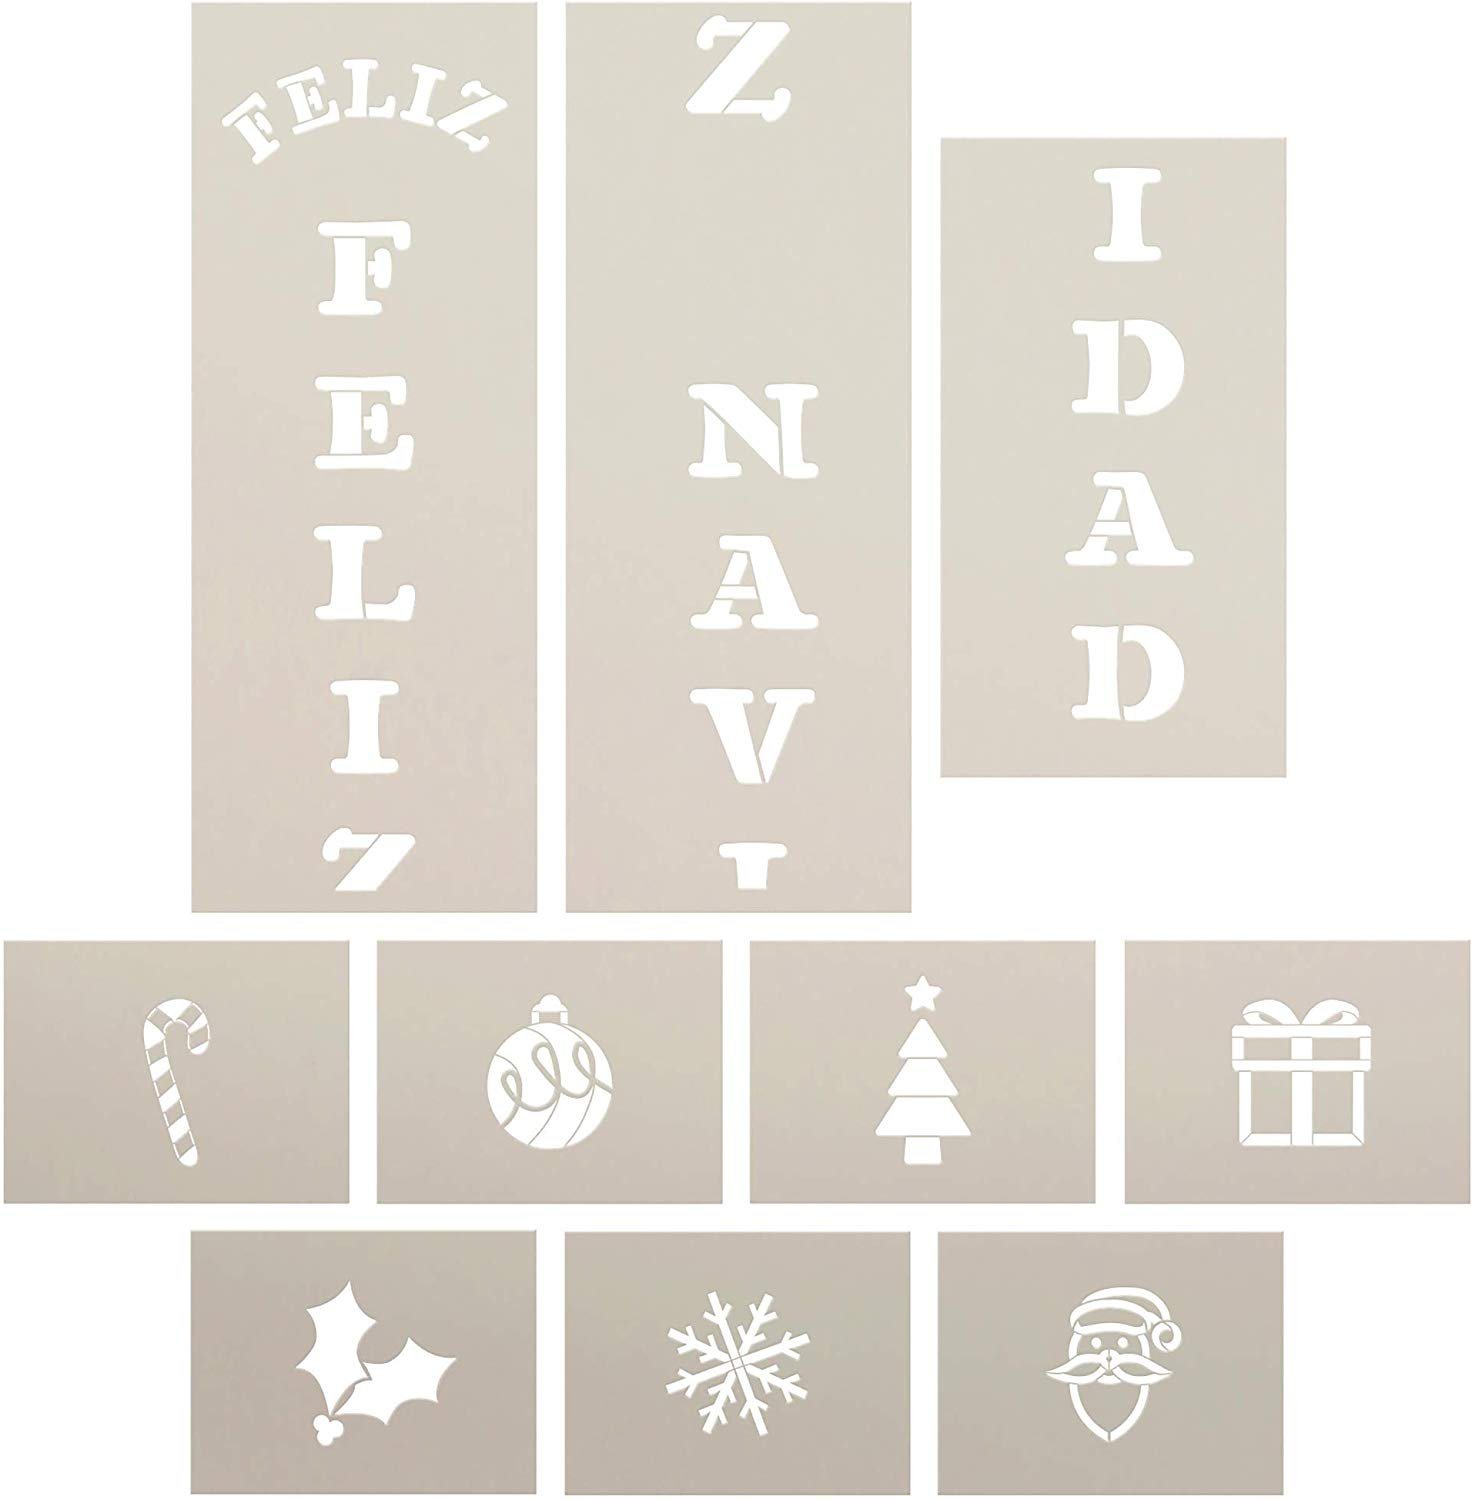 Feliz Navidad Tall Porch Stencil by StudioR12   10pc   Santa Christmas Tree Snowflake Ornament Candy Cane Holly   DIY Large Vertical Holiday Home Decor   Craft & Paint Wood Leaner Signs   Size 6ft